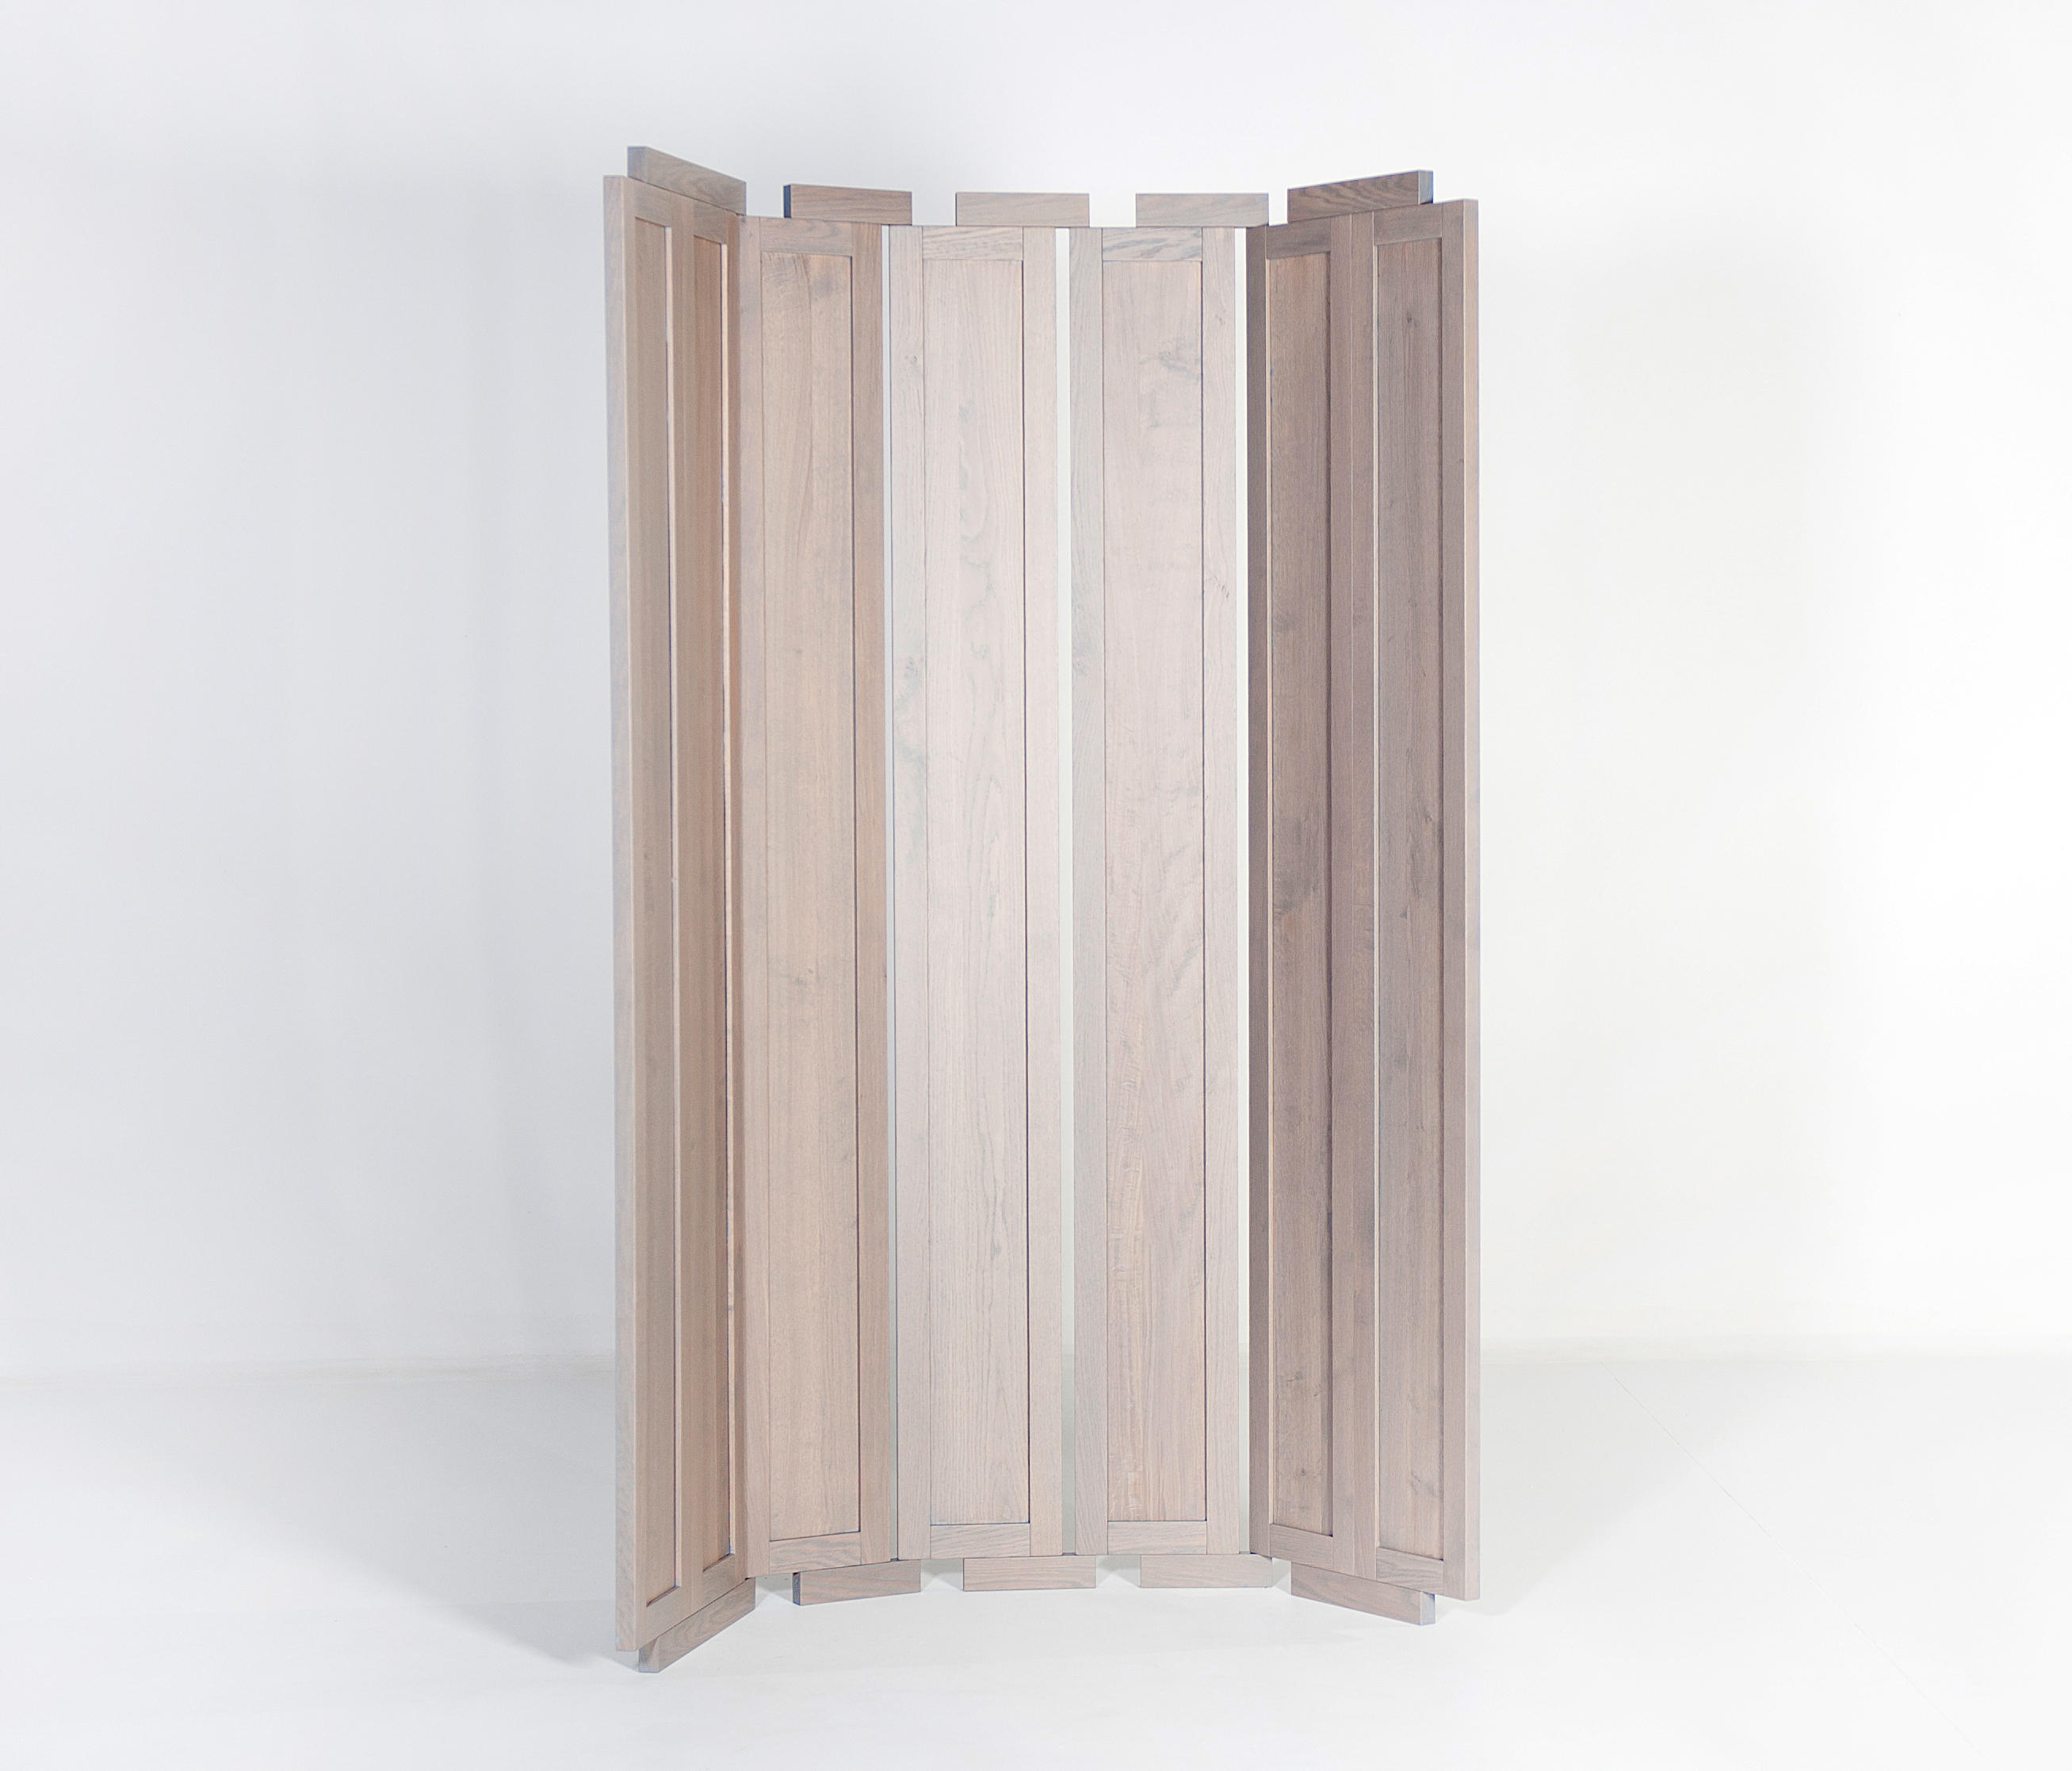 Parvent Paravent Screens From Van Rossum Architonic